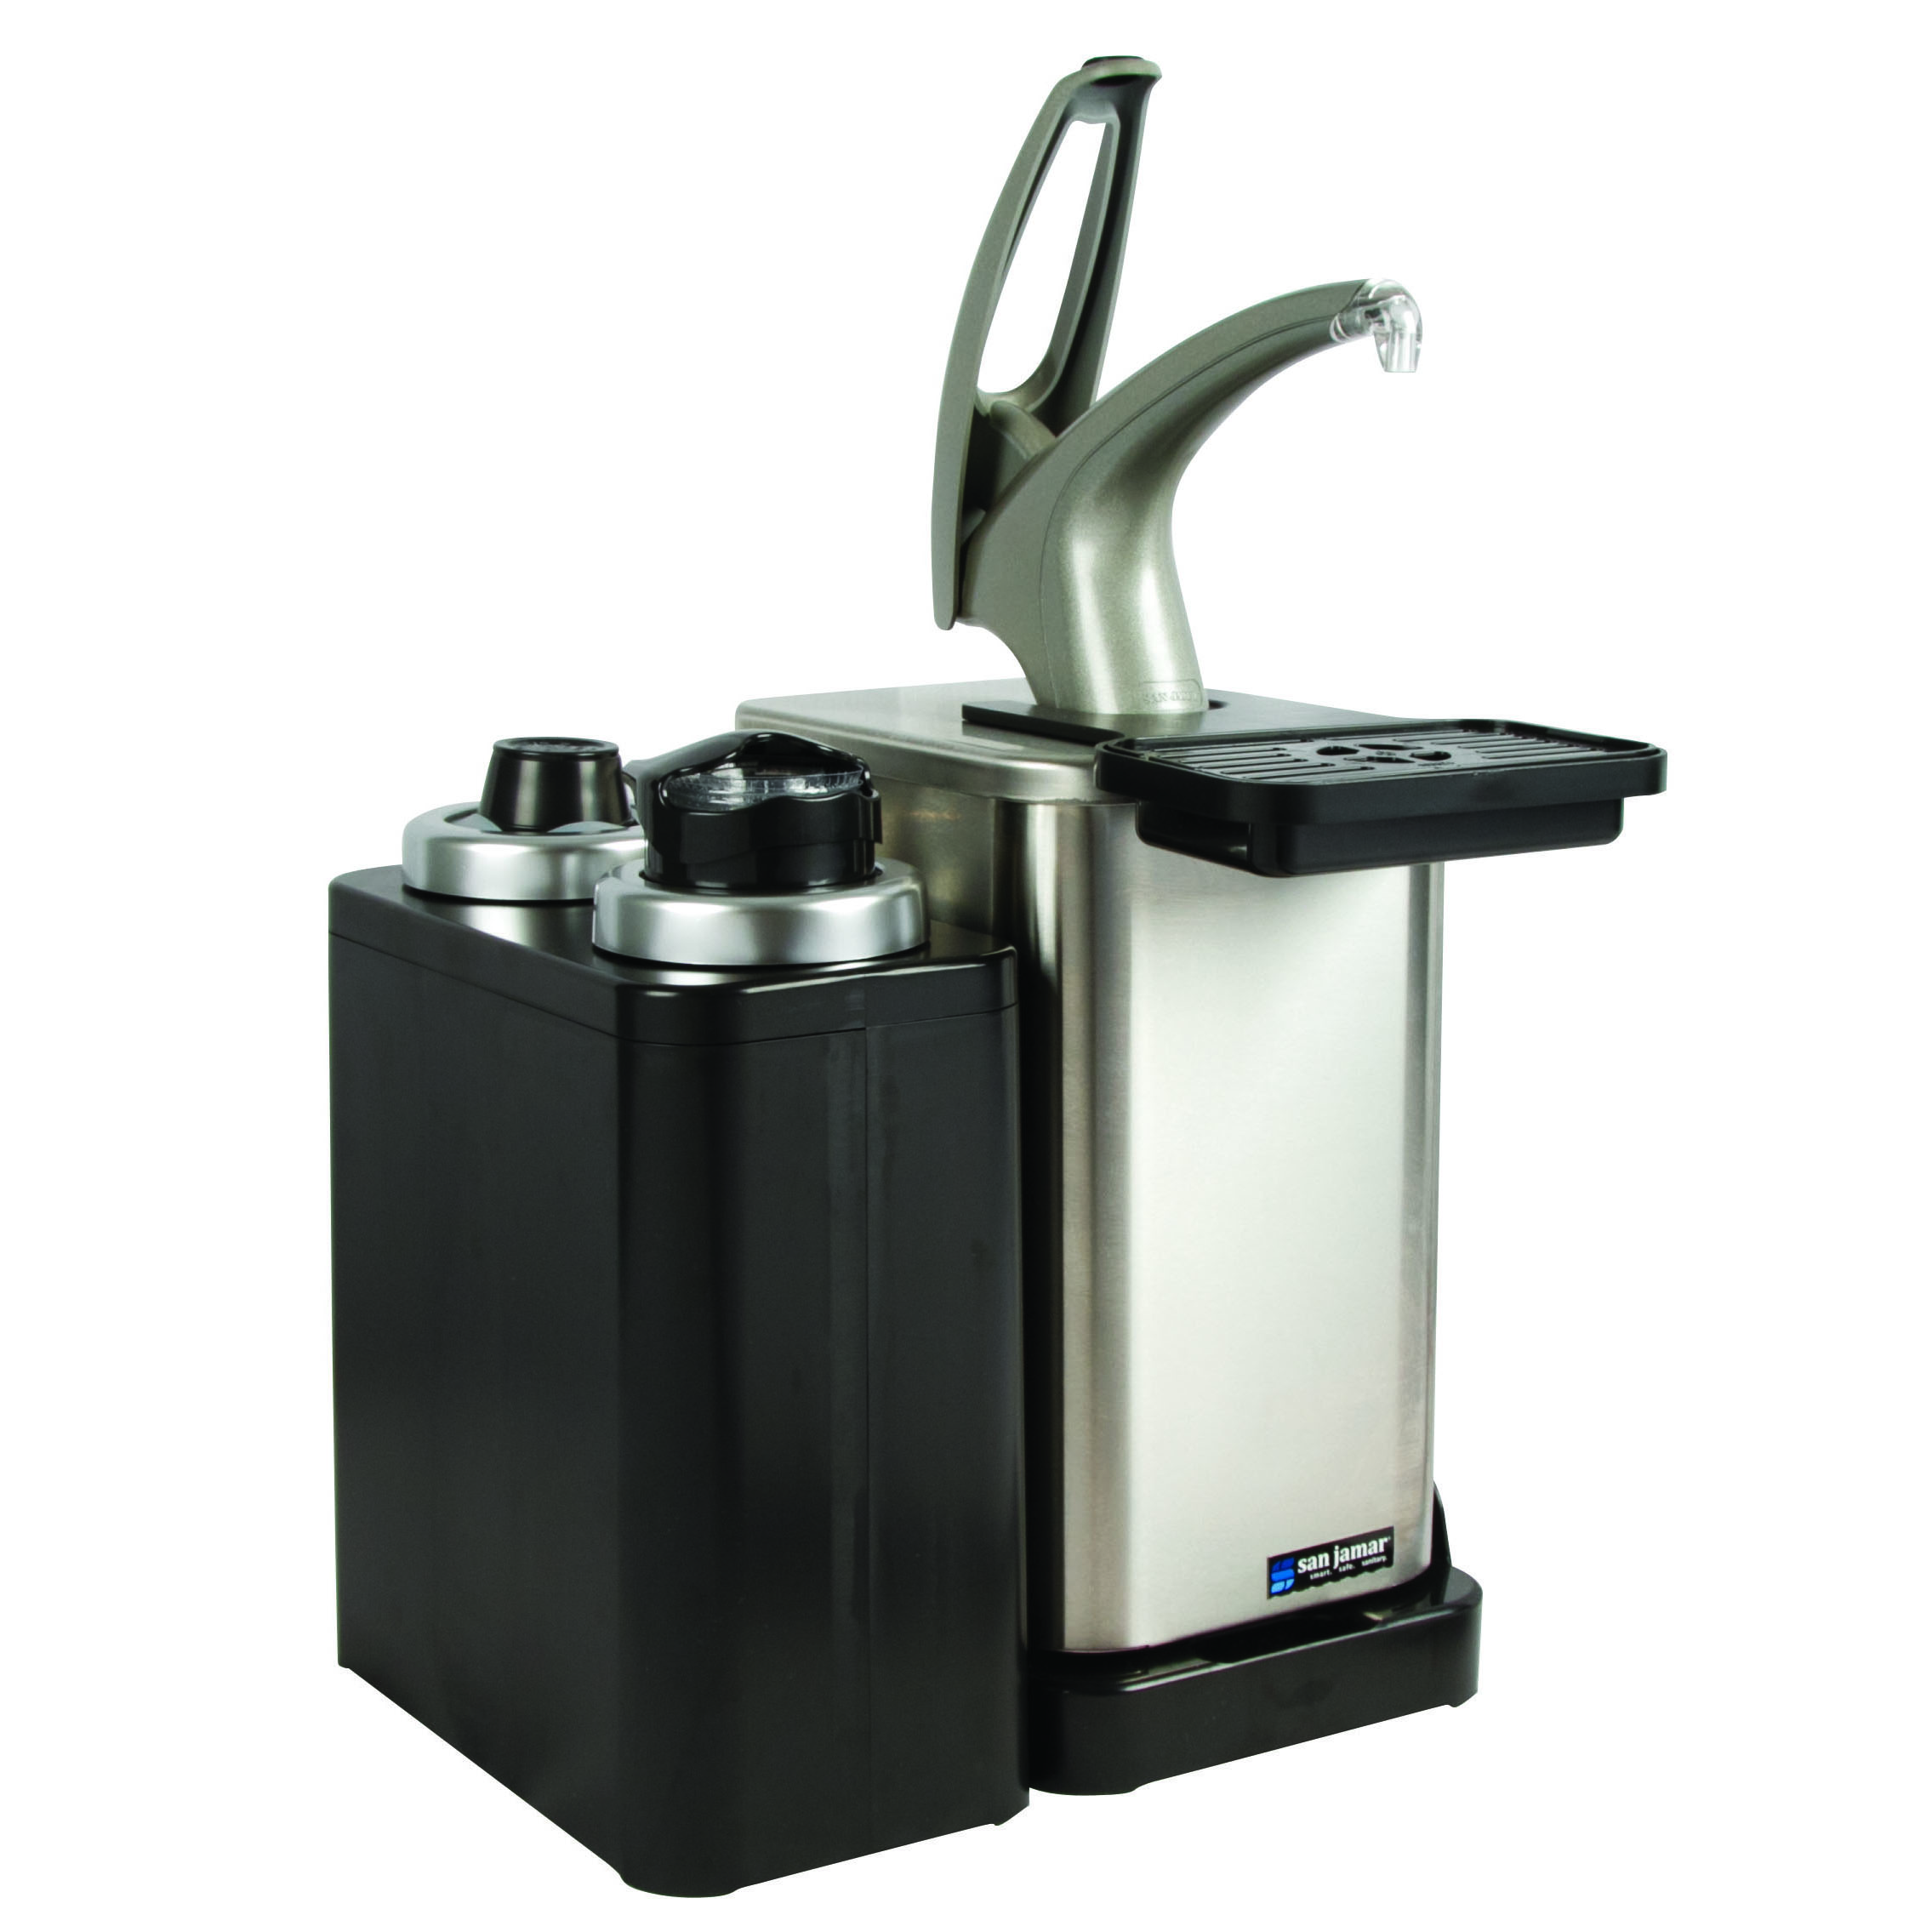 San Jamar MODP4900CL condiment dispenser pump-style